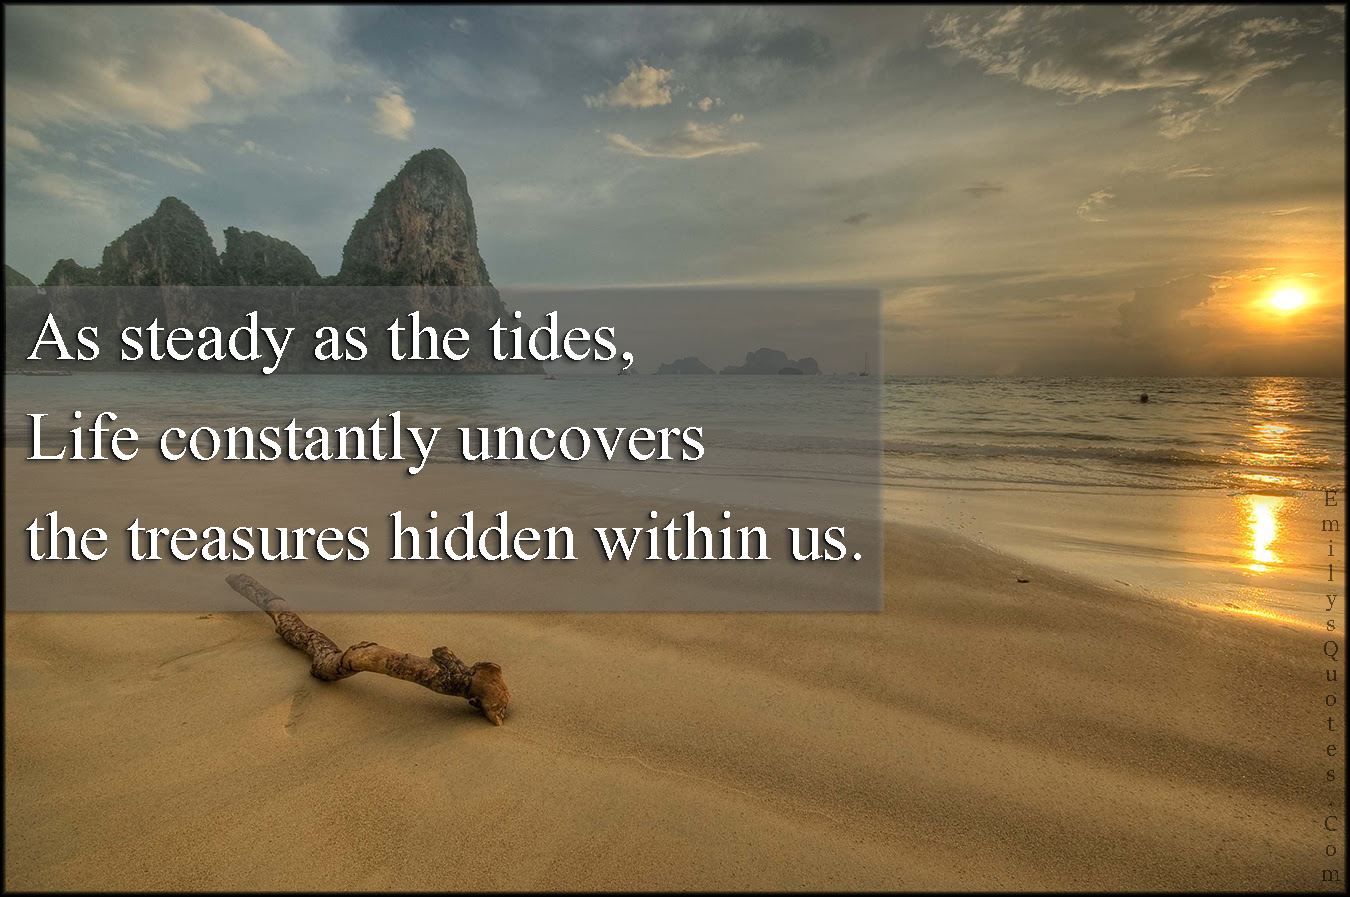 As Steady As The Tides Life Constantly Uncovers The Treasures